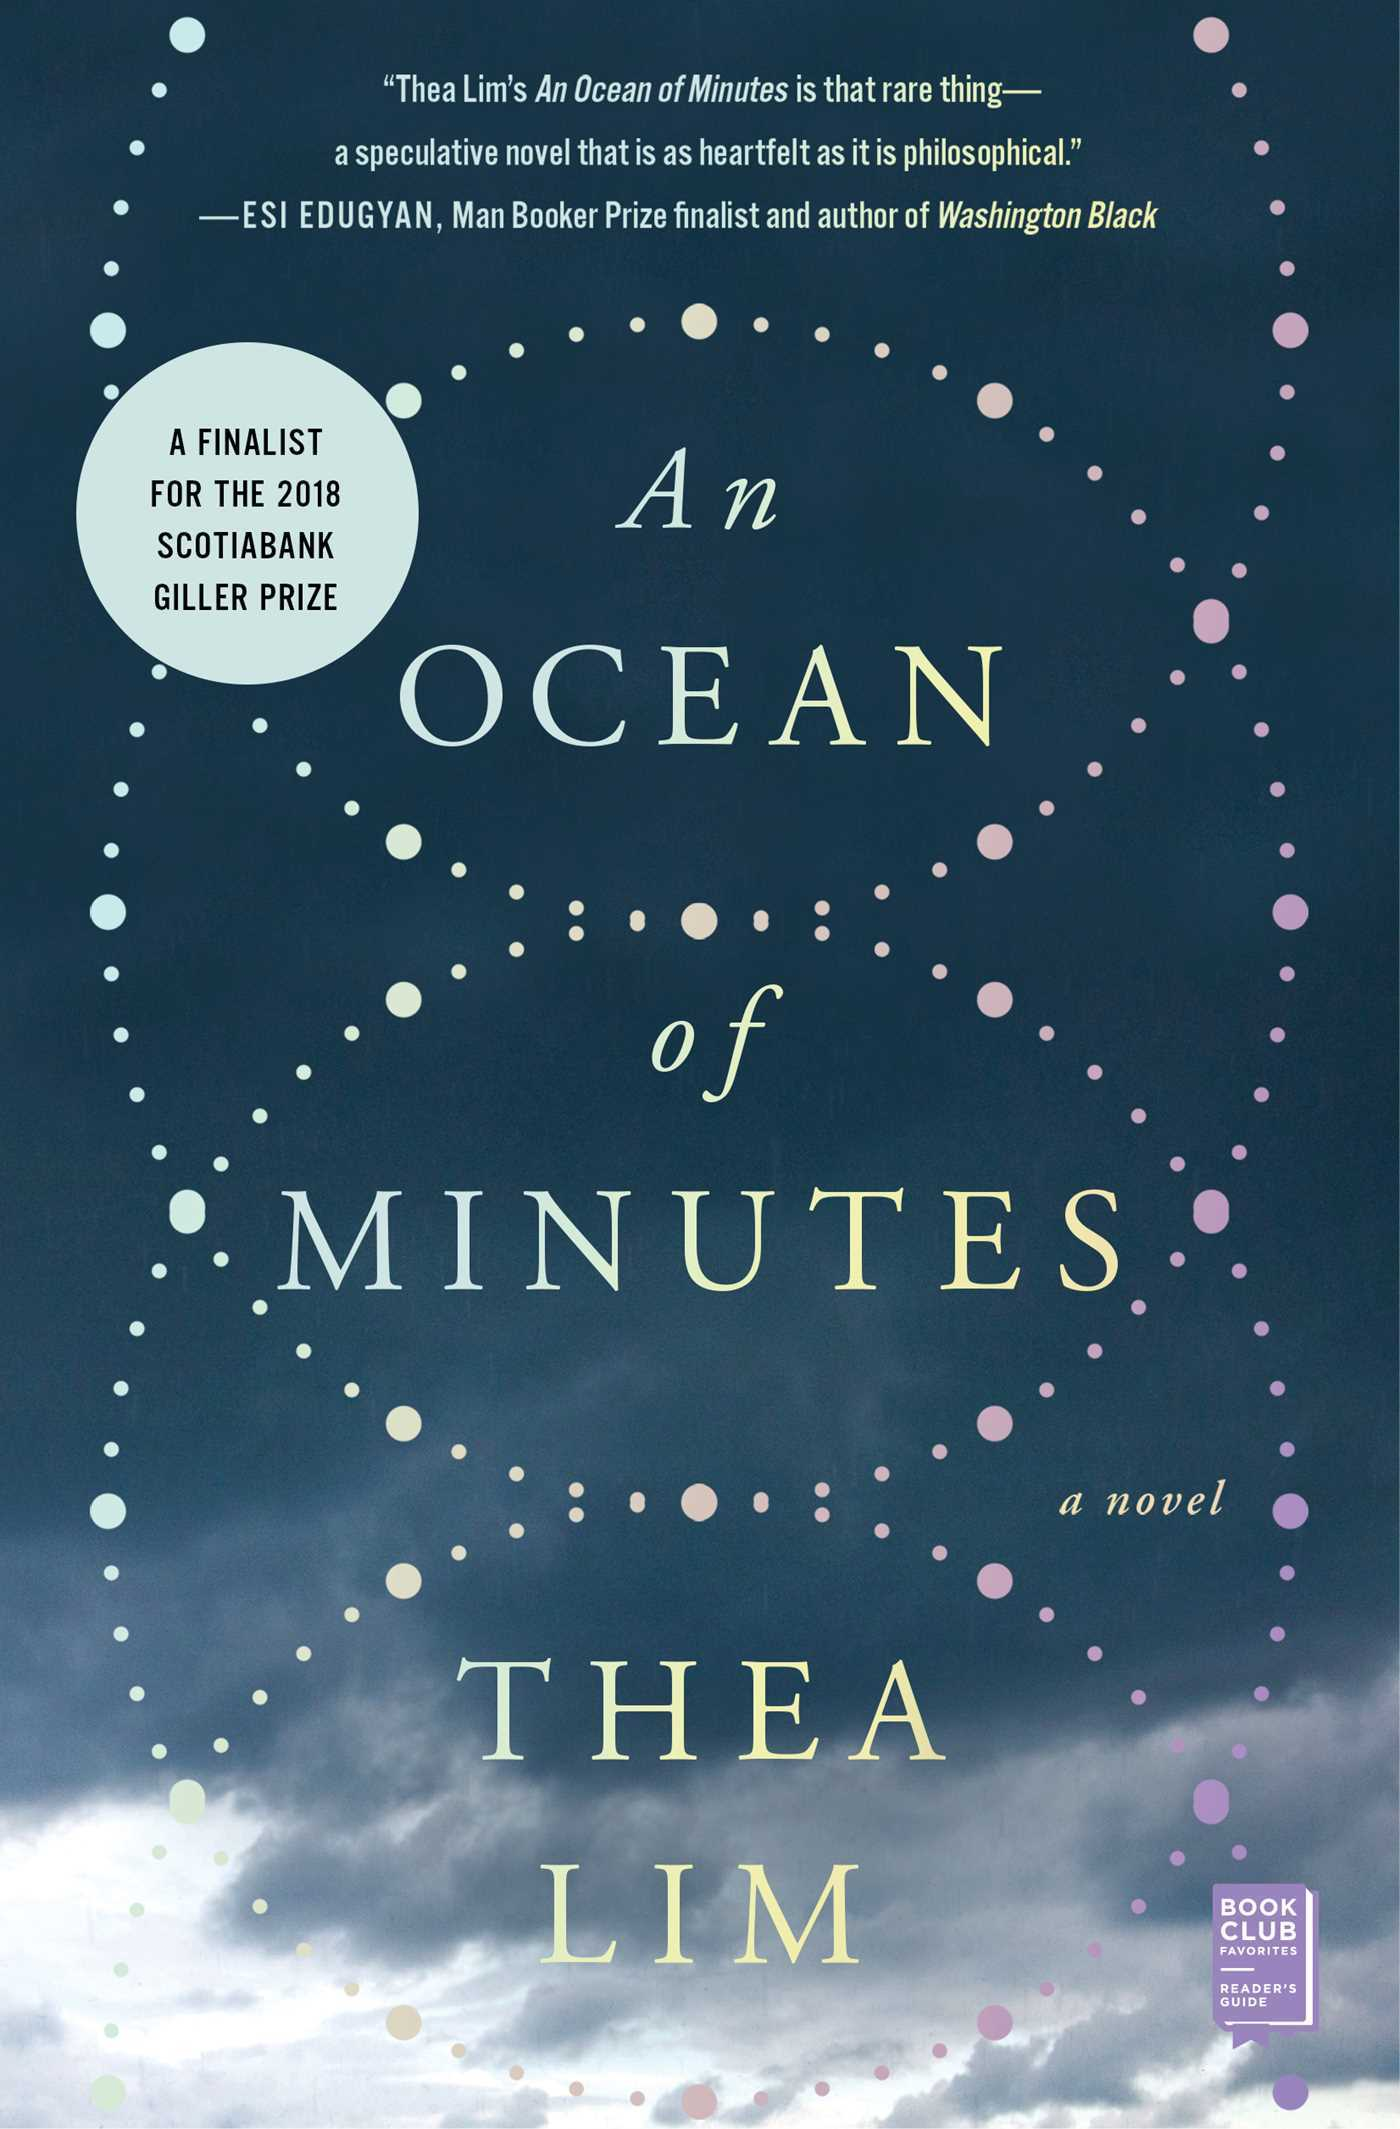 An Ocean of Minutes by Thea Lim